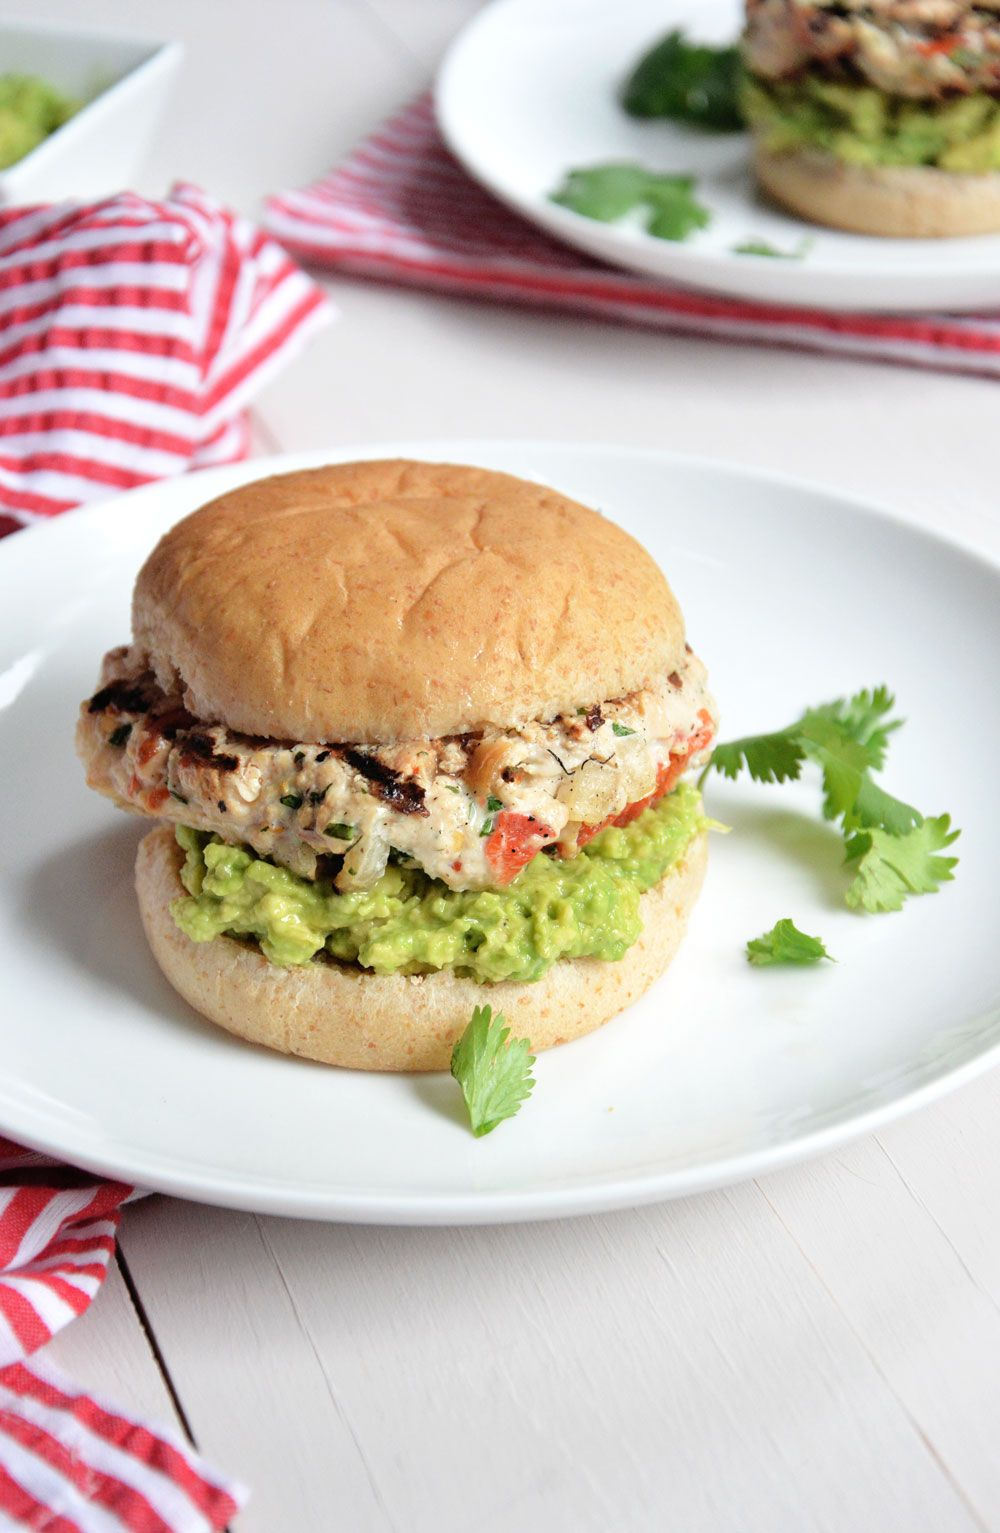 Avocado And Chile Lime Chicken Burges Lean Chicken Burgers With